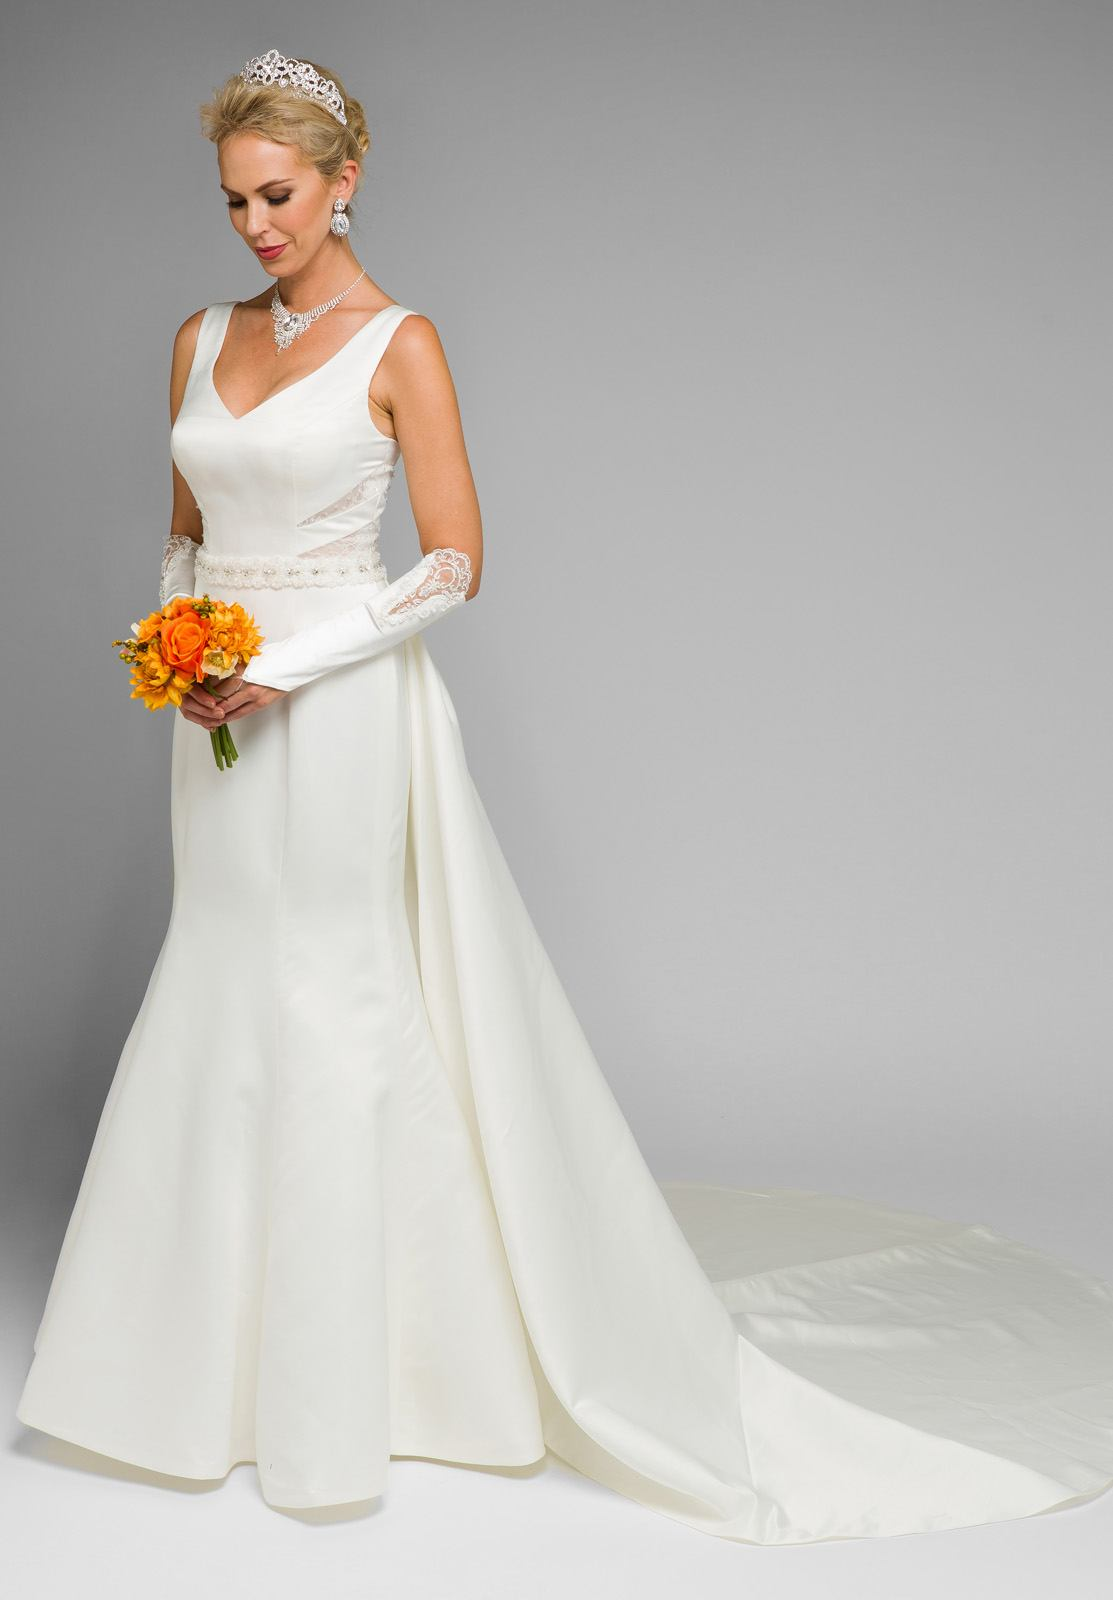 V-Neck Cut Out Mermaid Wedding Gown with Panel Train Ivory ...